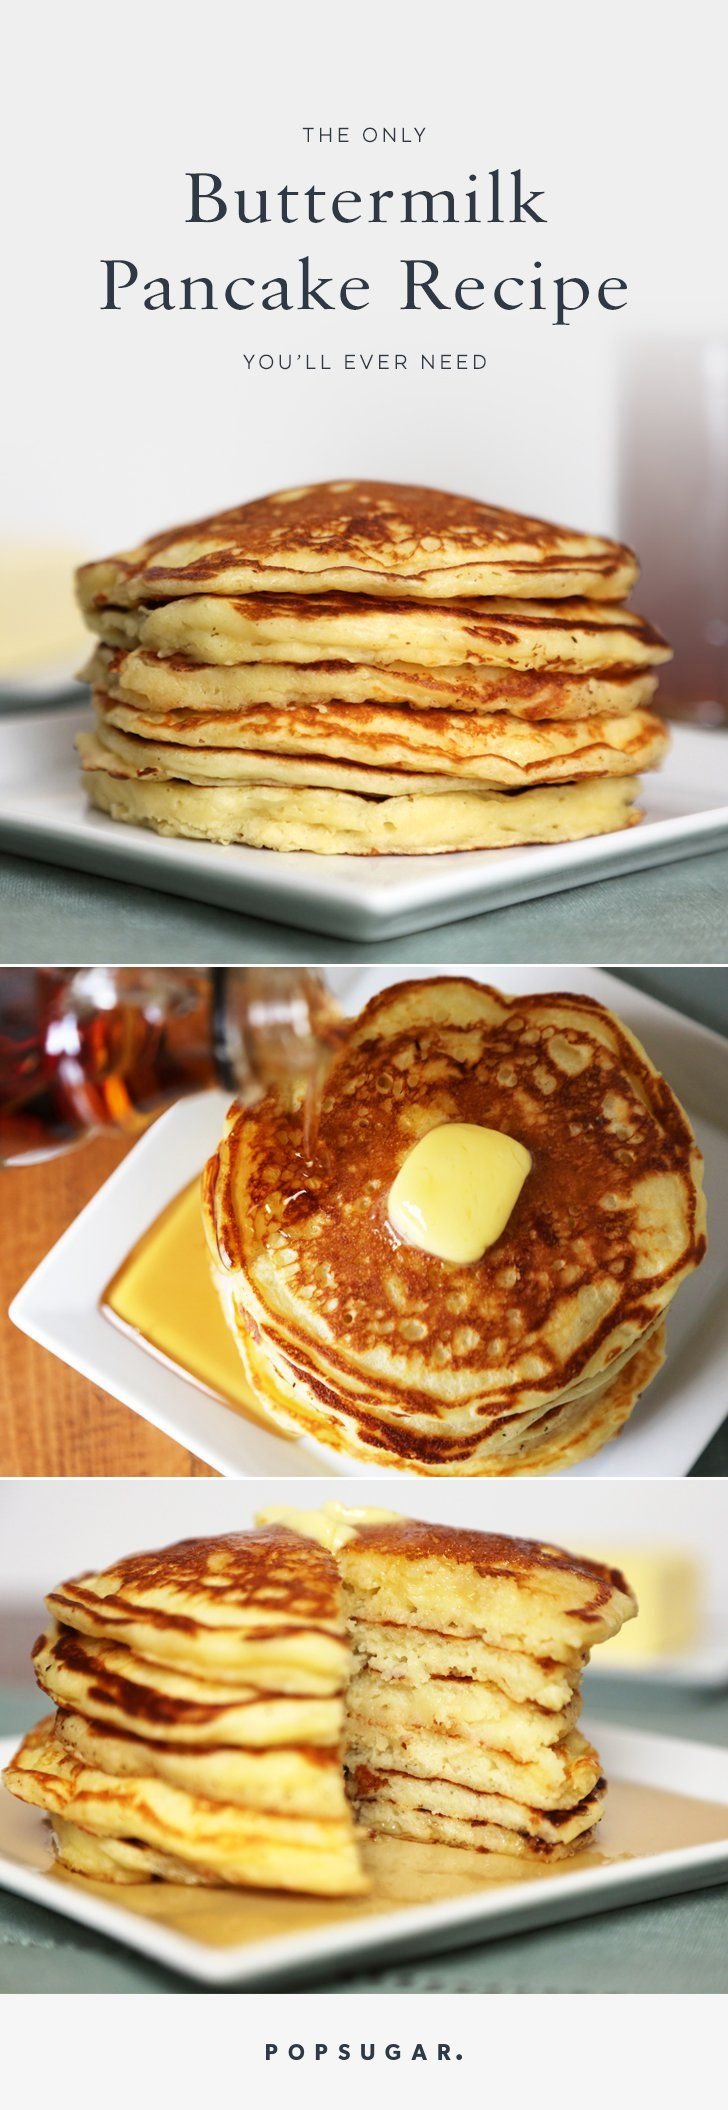 This buttermilk pancake recipe will land you the most flawless, fluffy flapjacks you've ever tasted.